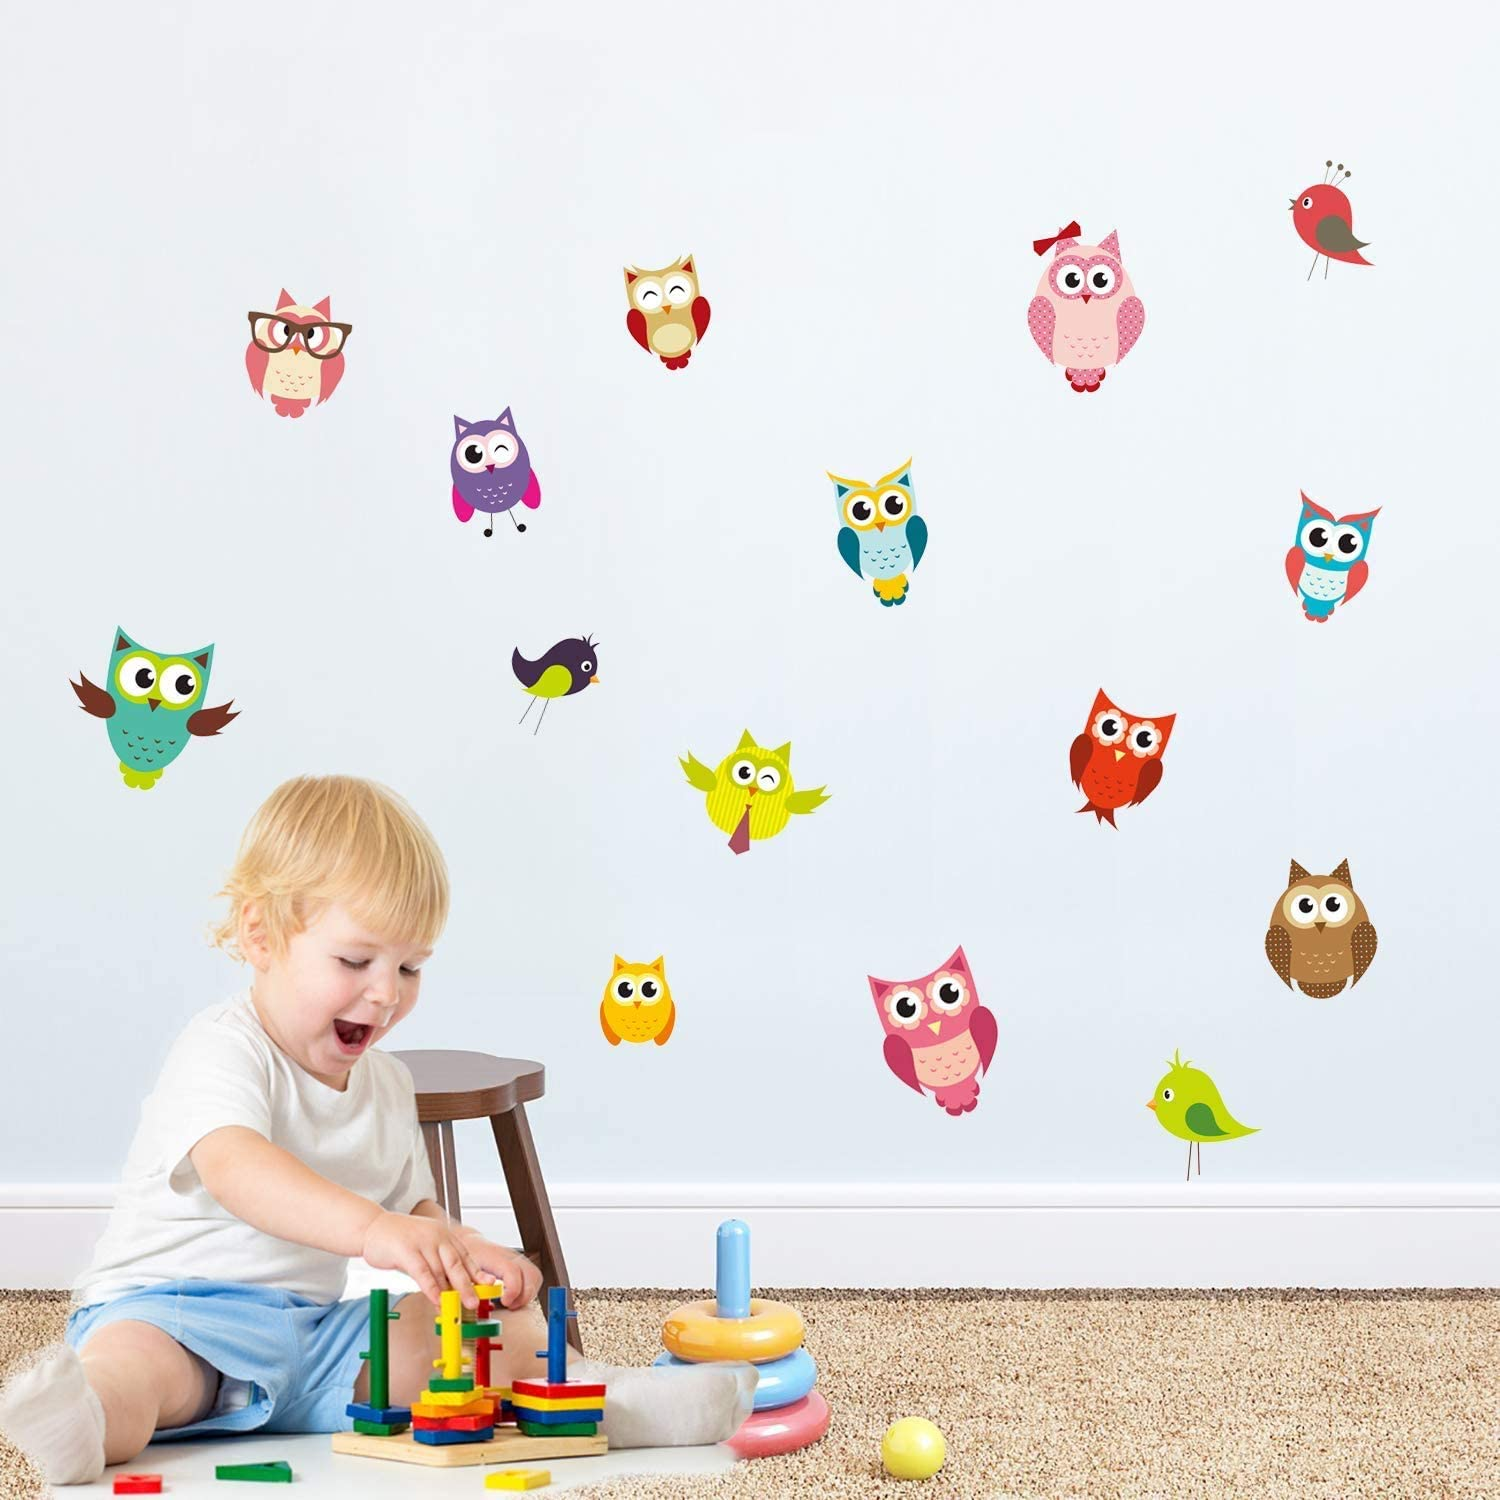 PARLAIM Owl and Bird Kids Animal Wall Stickers,Peel and Stick Removable Wall Decals for Kids Nursery Bedroom Living Play Room